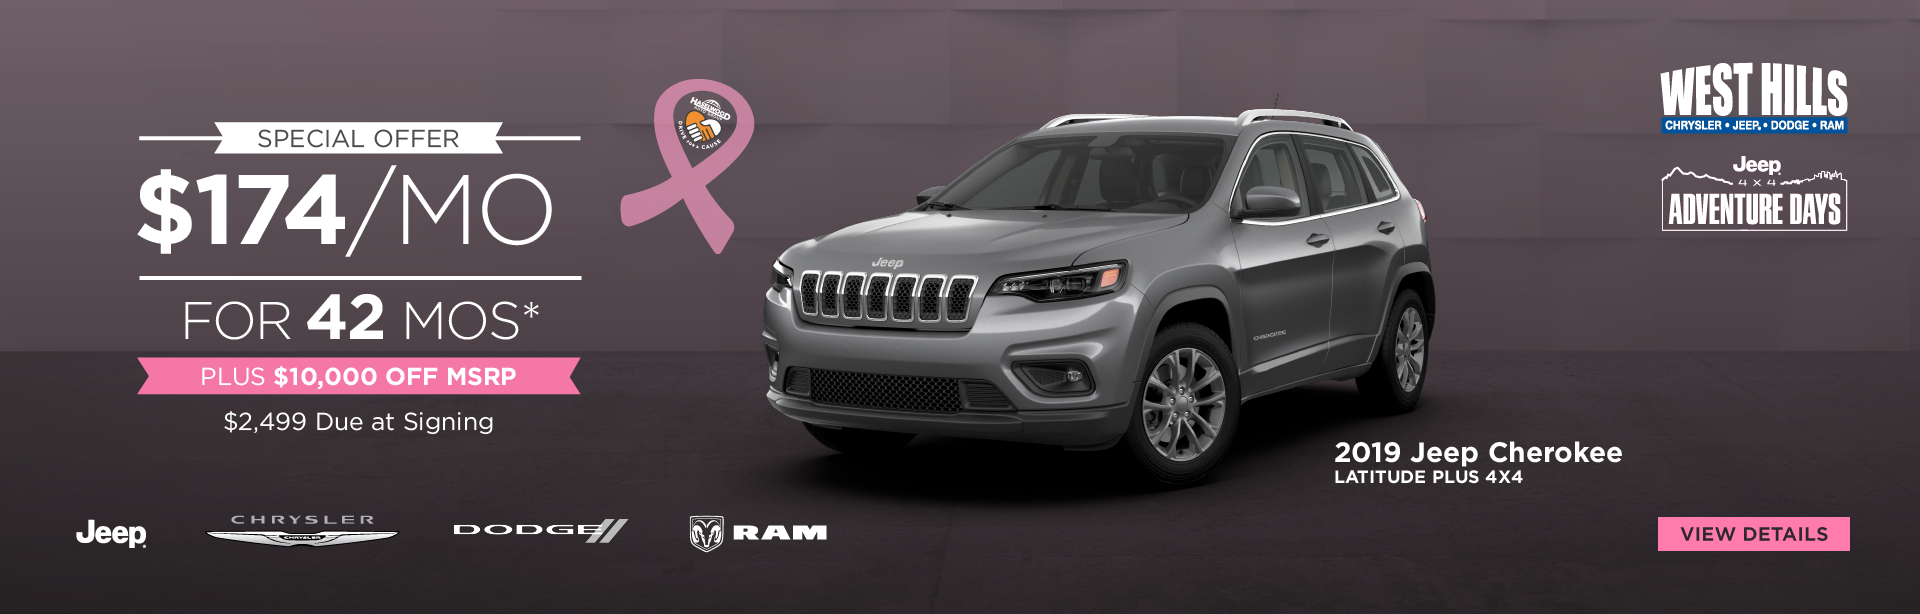 2019 Jeep Cherokee Latitude Plus 4x4 $174/mo. for 42 mos.*  PLUS $10,000 OFF of MSRP $2,499 Due at Signing    *Offer valid on 2019 Jeep Cherokee Latitude Plus 4x4. $174/mo. for 42 mos. Plus, $10,000 OFF of MSRP. $2,499 Due at Signing. Based on MSRP $30,140. Based on approval of program ID 70LKJC, 70LK3C, 70LK1, 44CKB3, WECKA, WECKZ, 43CL1B3. 42 months at $13.89 per $1,000 financed. VIN: 1C4PJMLB4KD441528. Subject to credit approval. Not all lessees will qualify for lowest payment through participating lender. Option to purchase at lease end. Excludes state and local taxes, tags, registration and title, insurance and dealer charges.  A negotiable dealer documentary service fee of up to $150 may be added to the sale price or capitalized cost. Lessee pays for excess mileage, wear and tear. Offer expires: 10/31/2019.